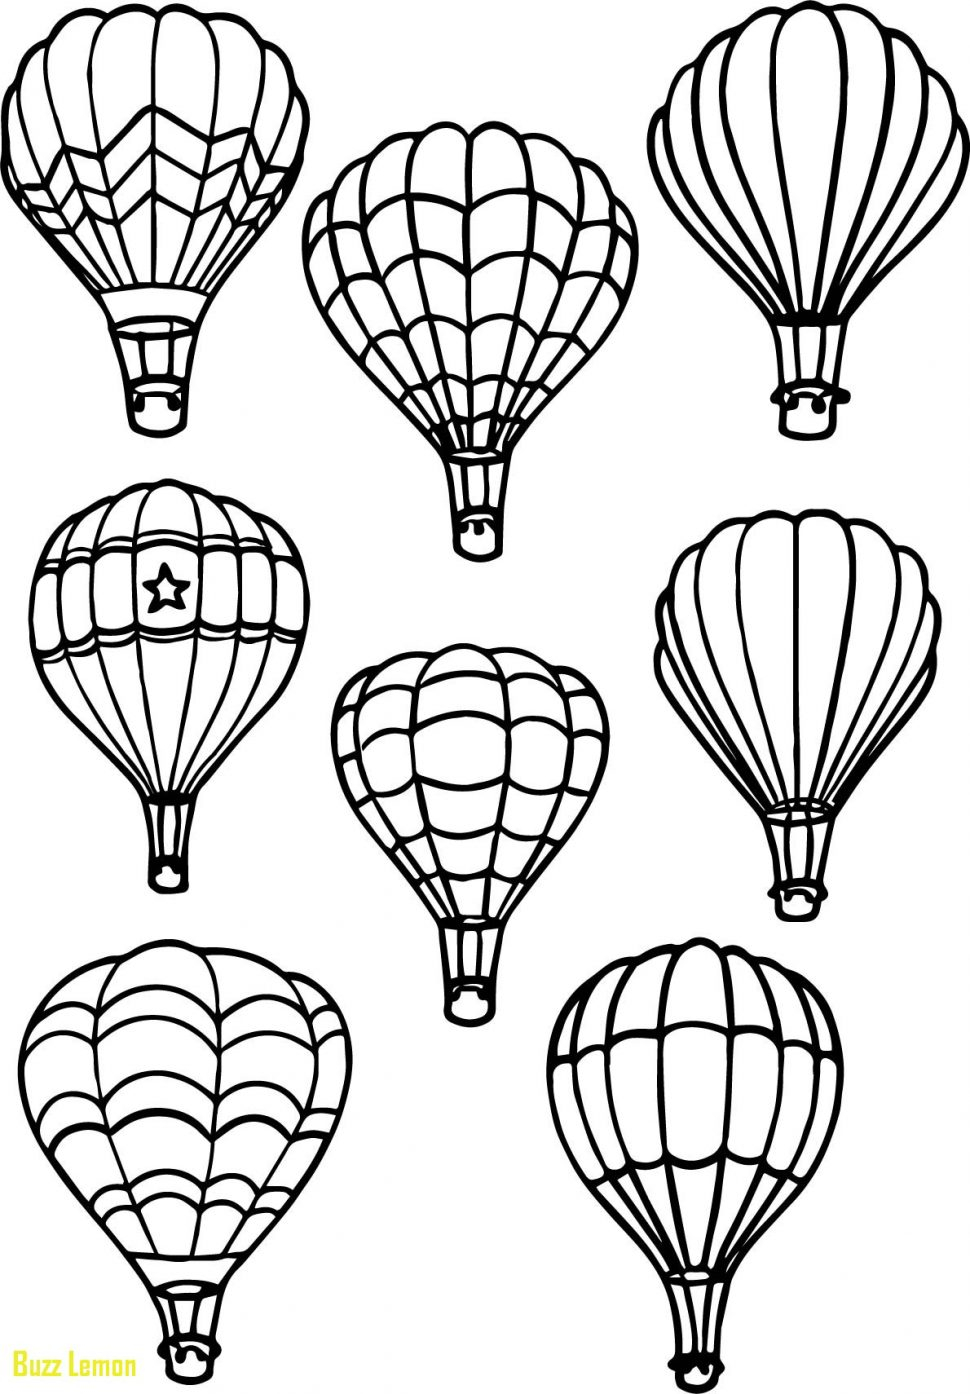 Coloring Books and Pages astonishing Hot Air Balloonring Pages Gallery Of Fresh Hot Air Balloons Coloring Pages Collection to Print